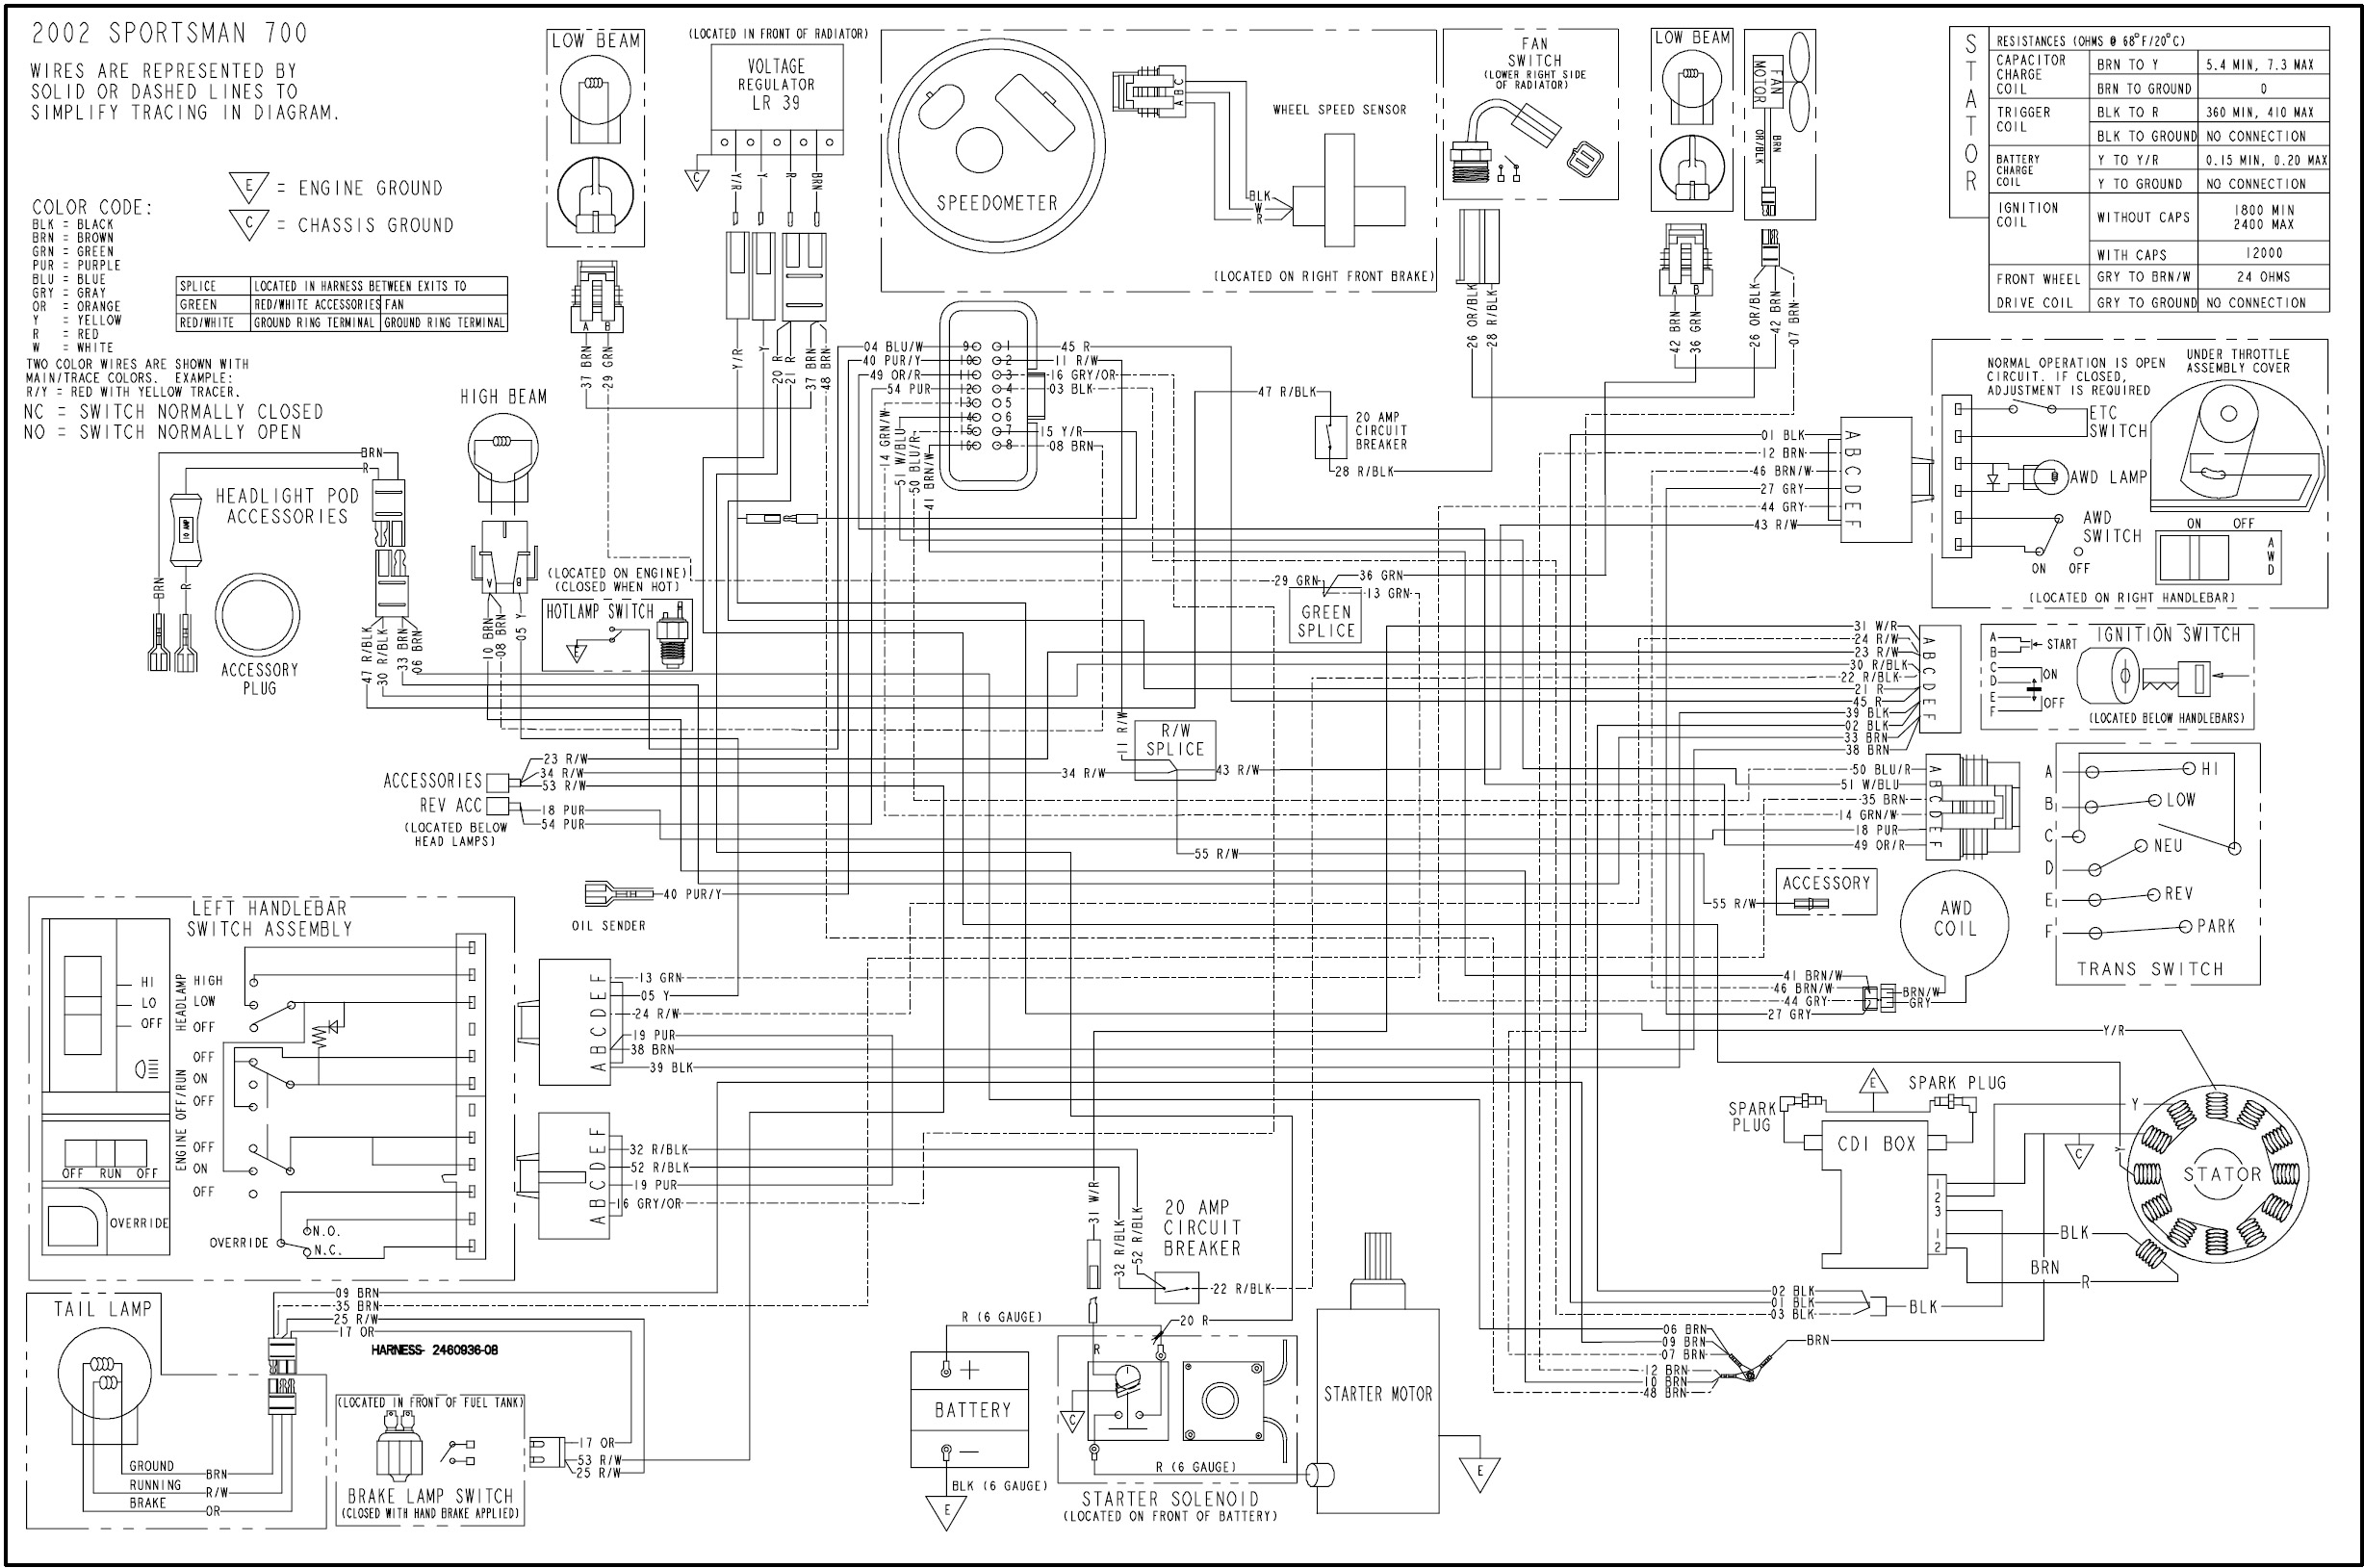 wd_700_02 wiring diagram polaris xplorer 300 the wiring diagram 2007 suzuki king quad 700 wiring diagram at webbmarketing.co